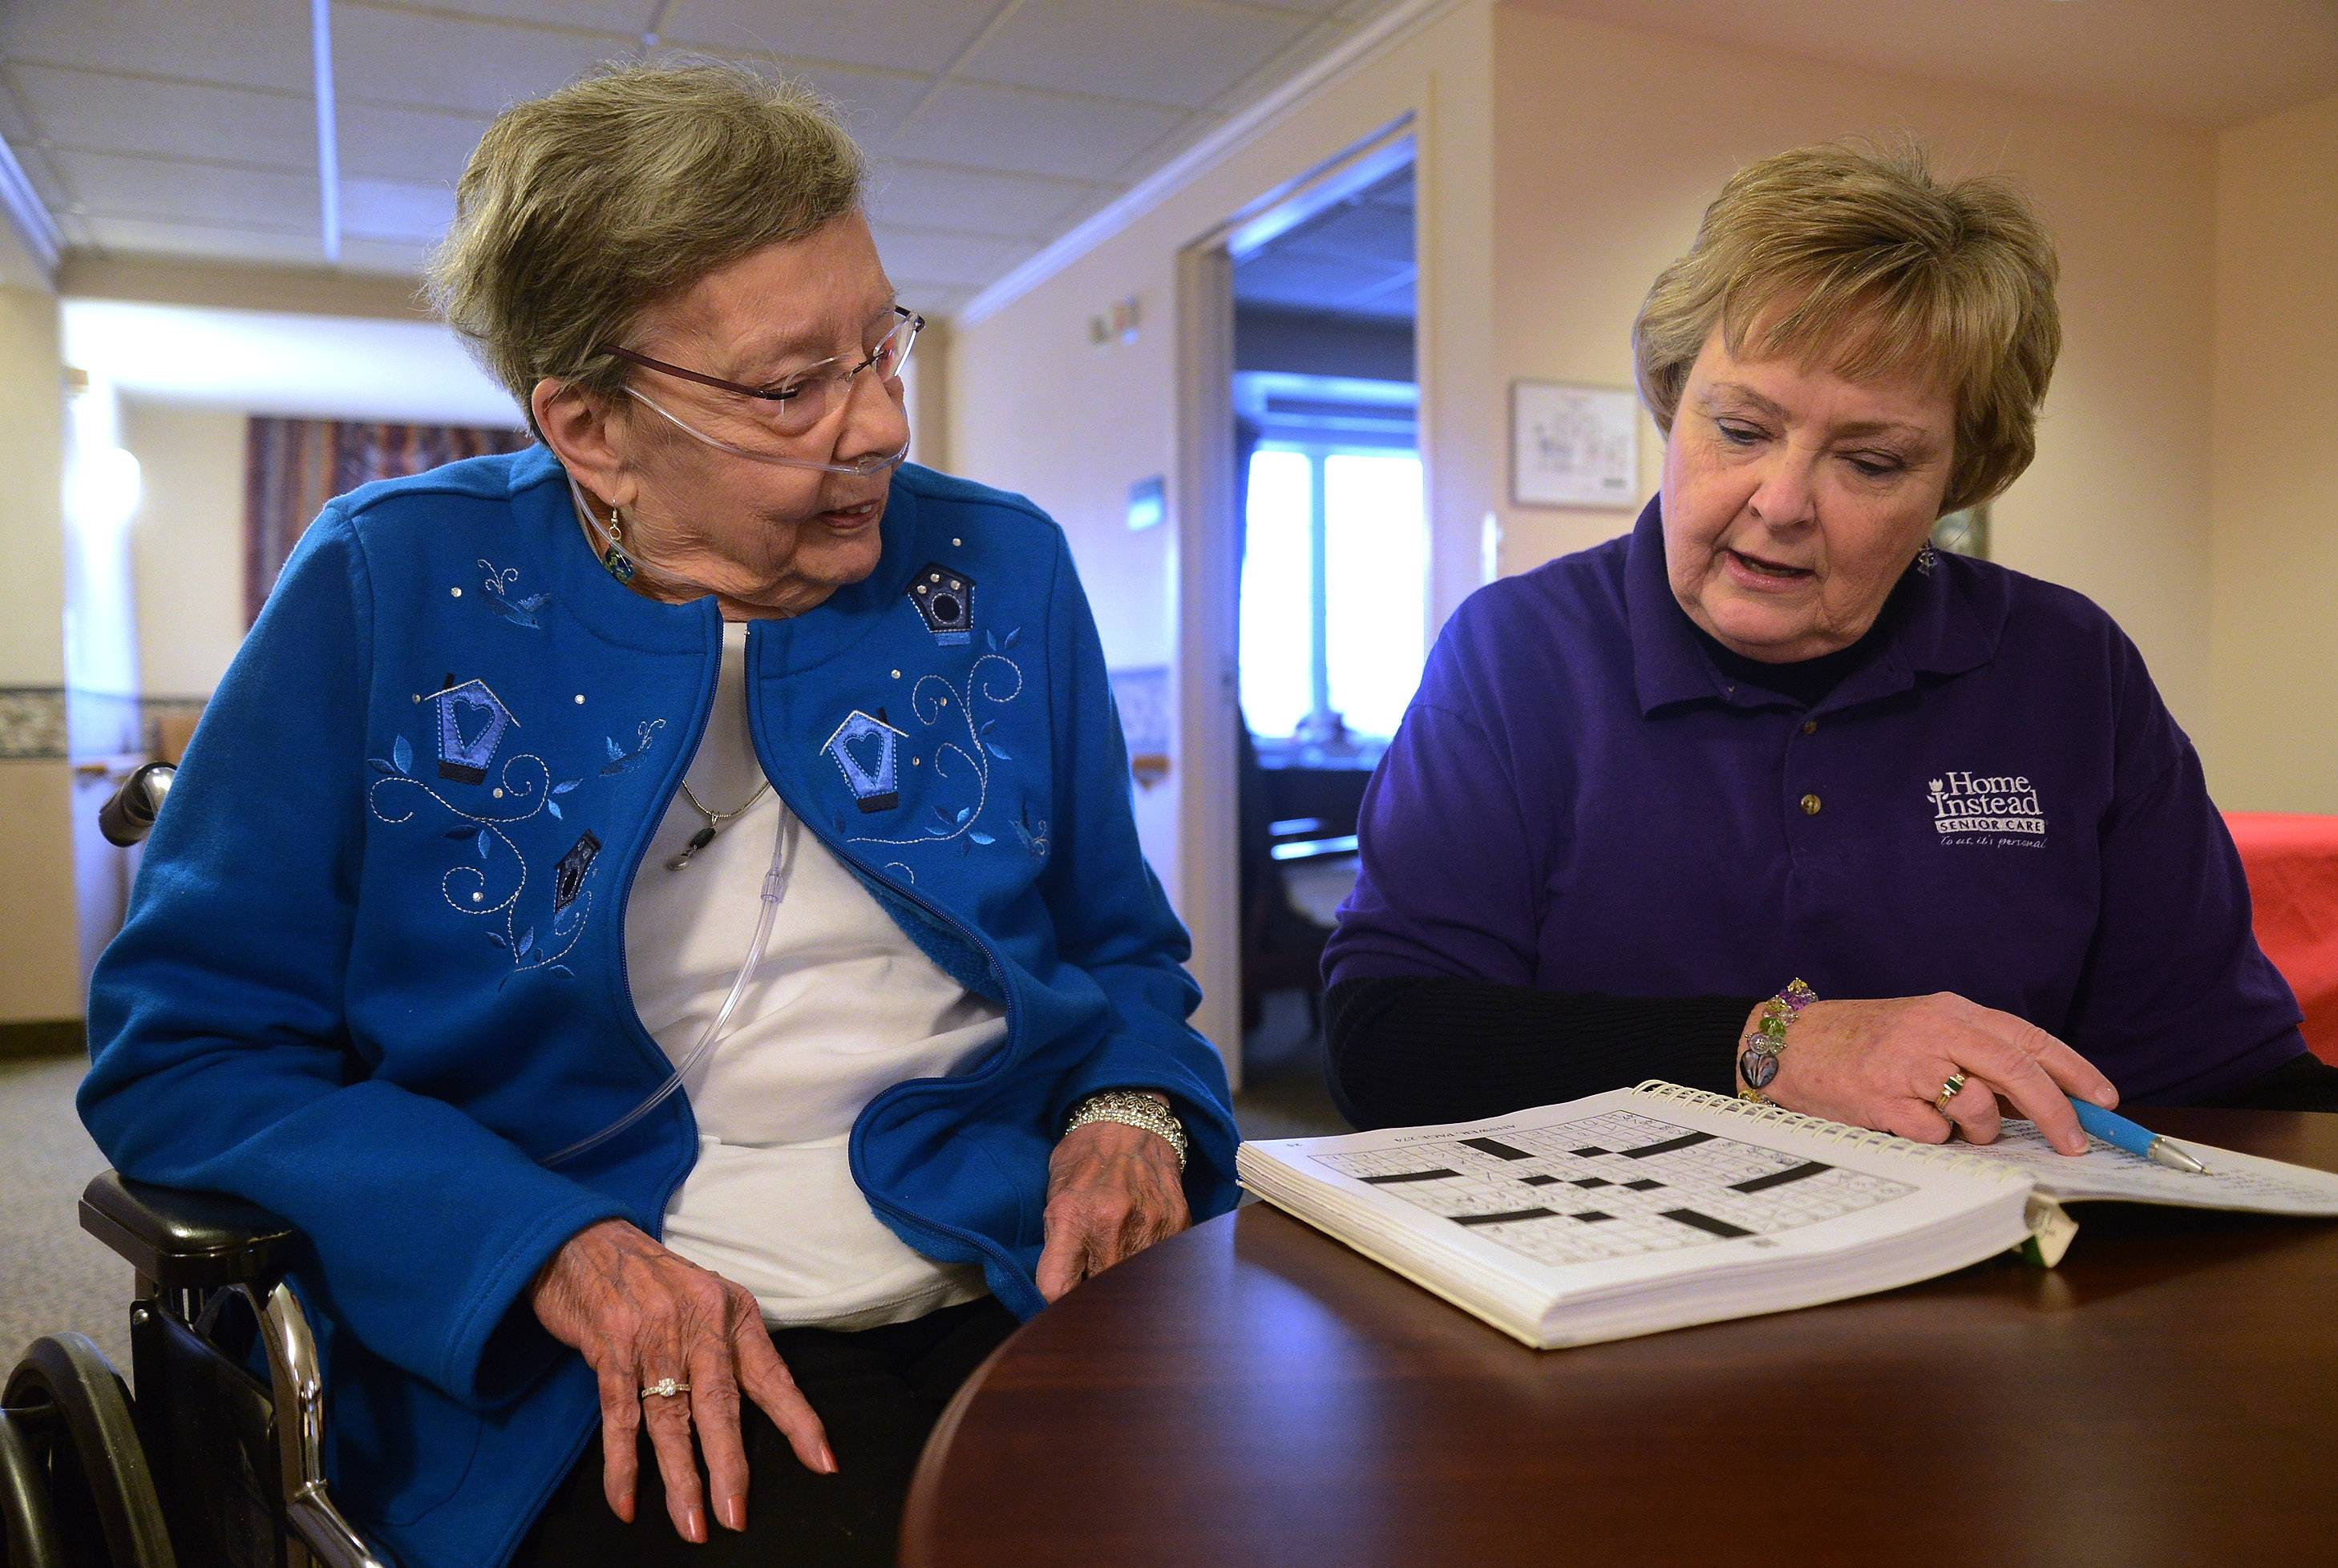 Caregiver Terrie Thompson, right, works with two different clients each week, including Ann Stillwaugh.